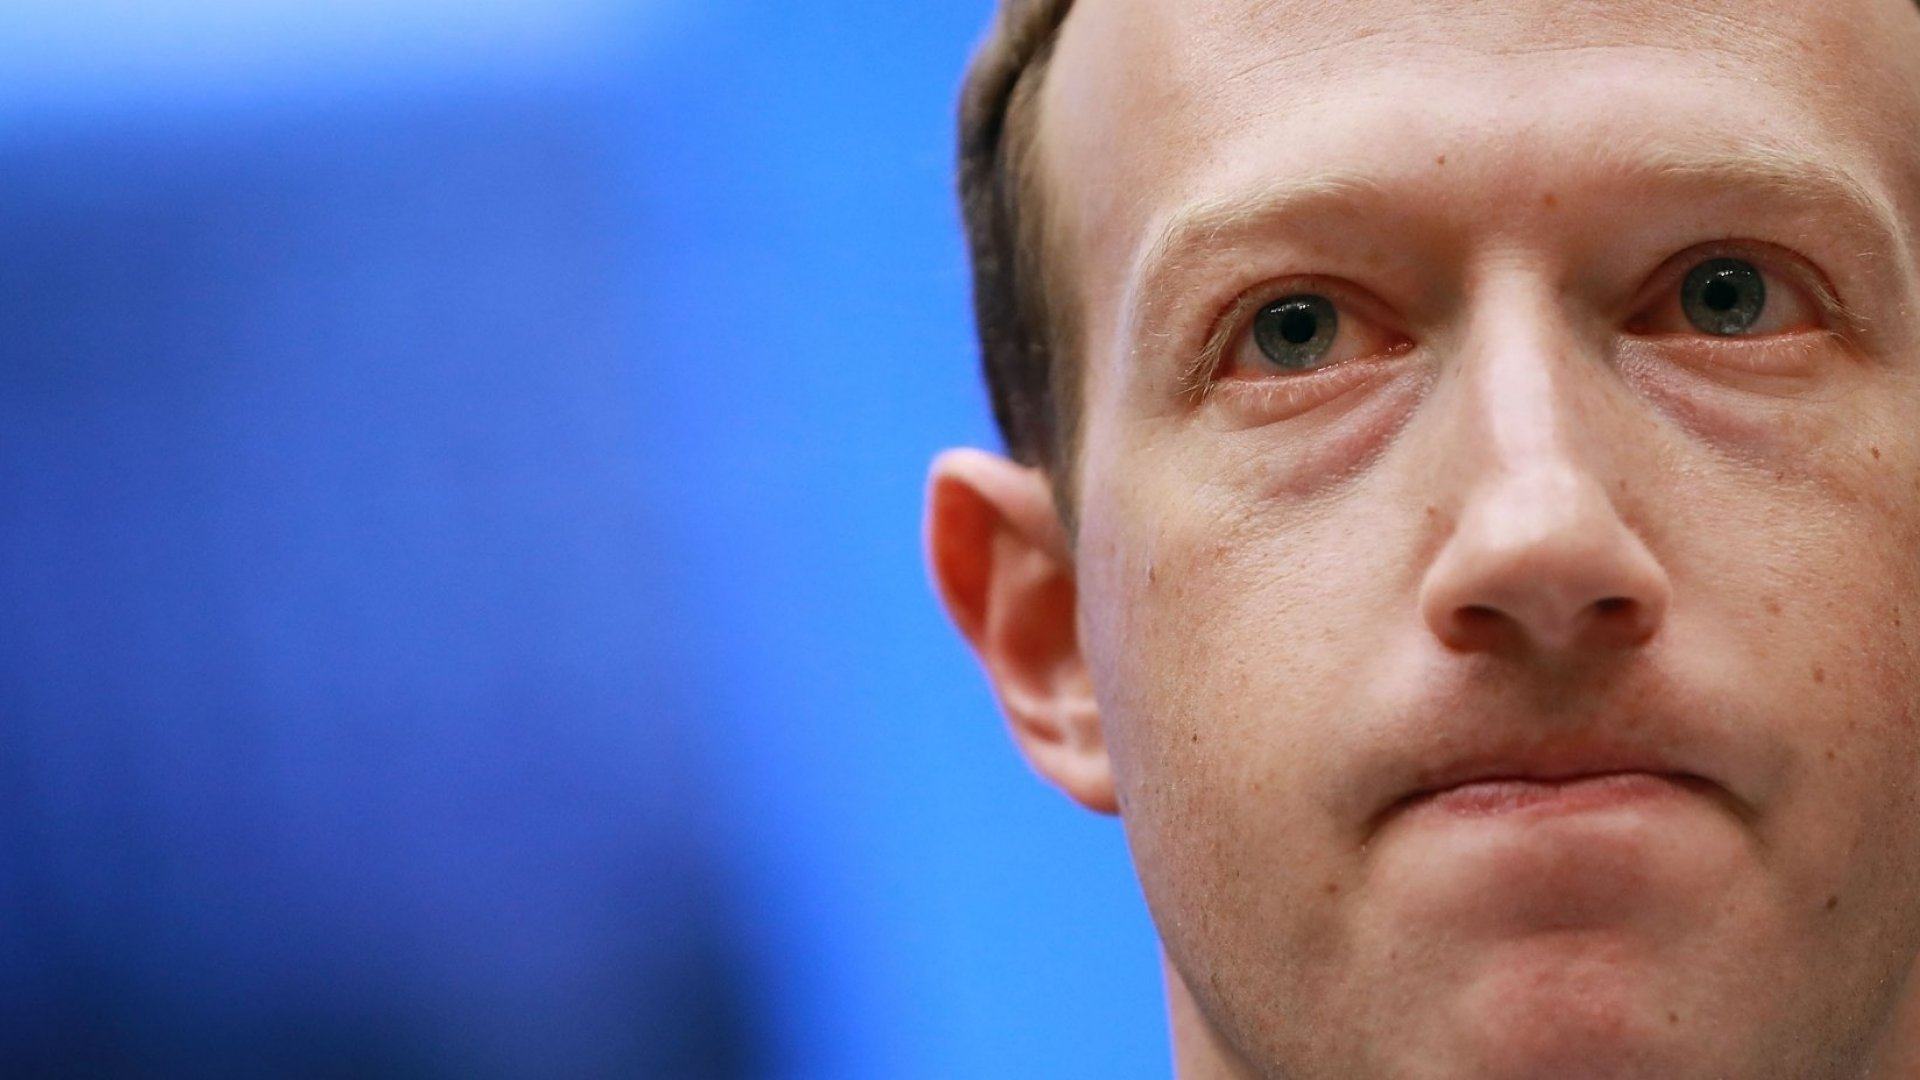 Facebook Has Tools to Sway the 2020 Election Against Trump, But an Exec Cautions Against Using Them